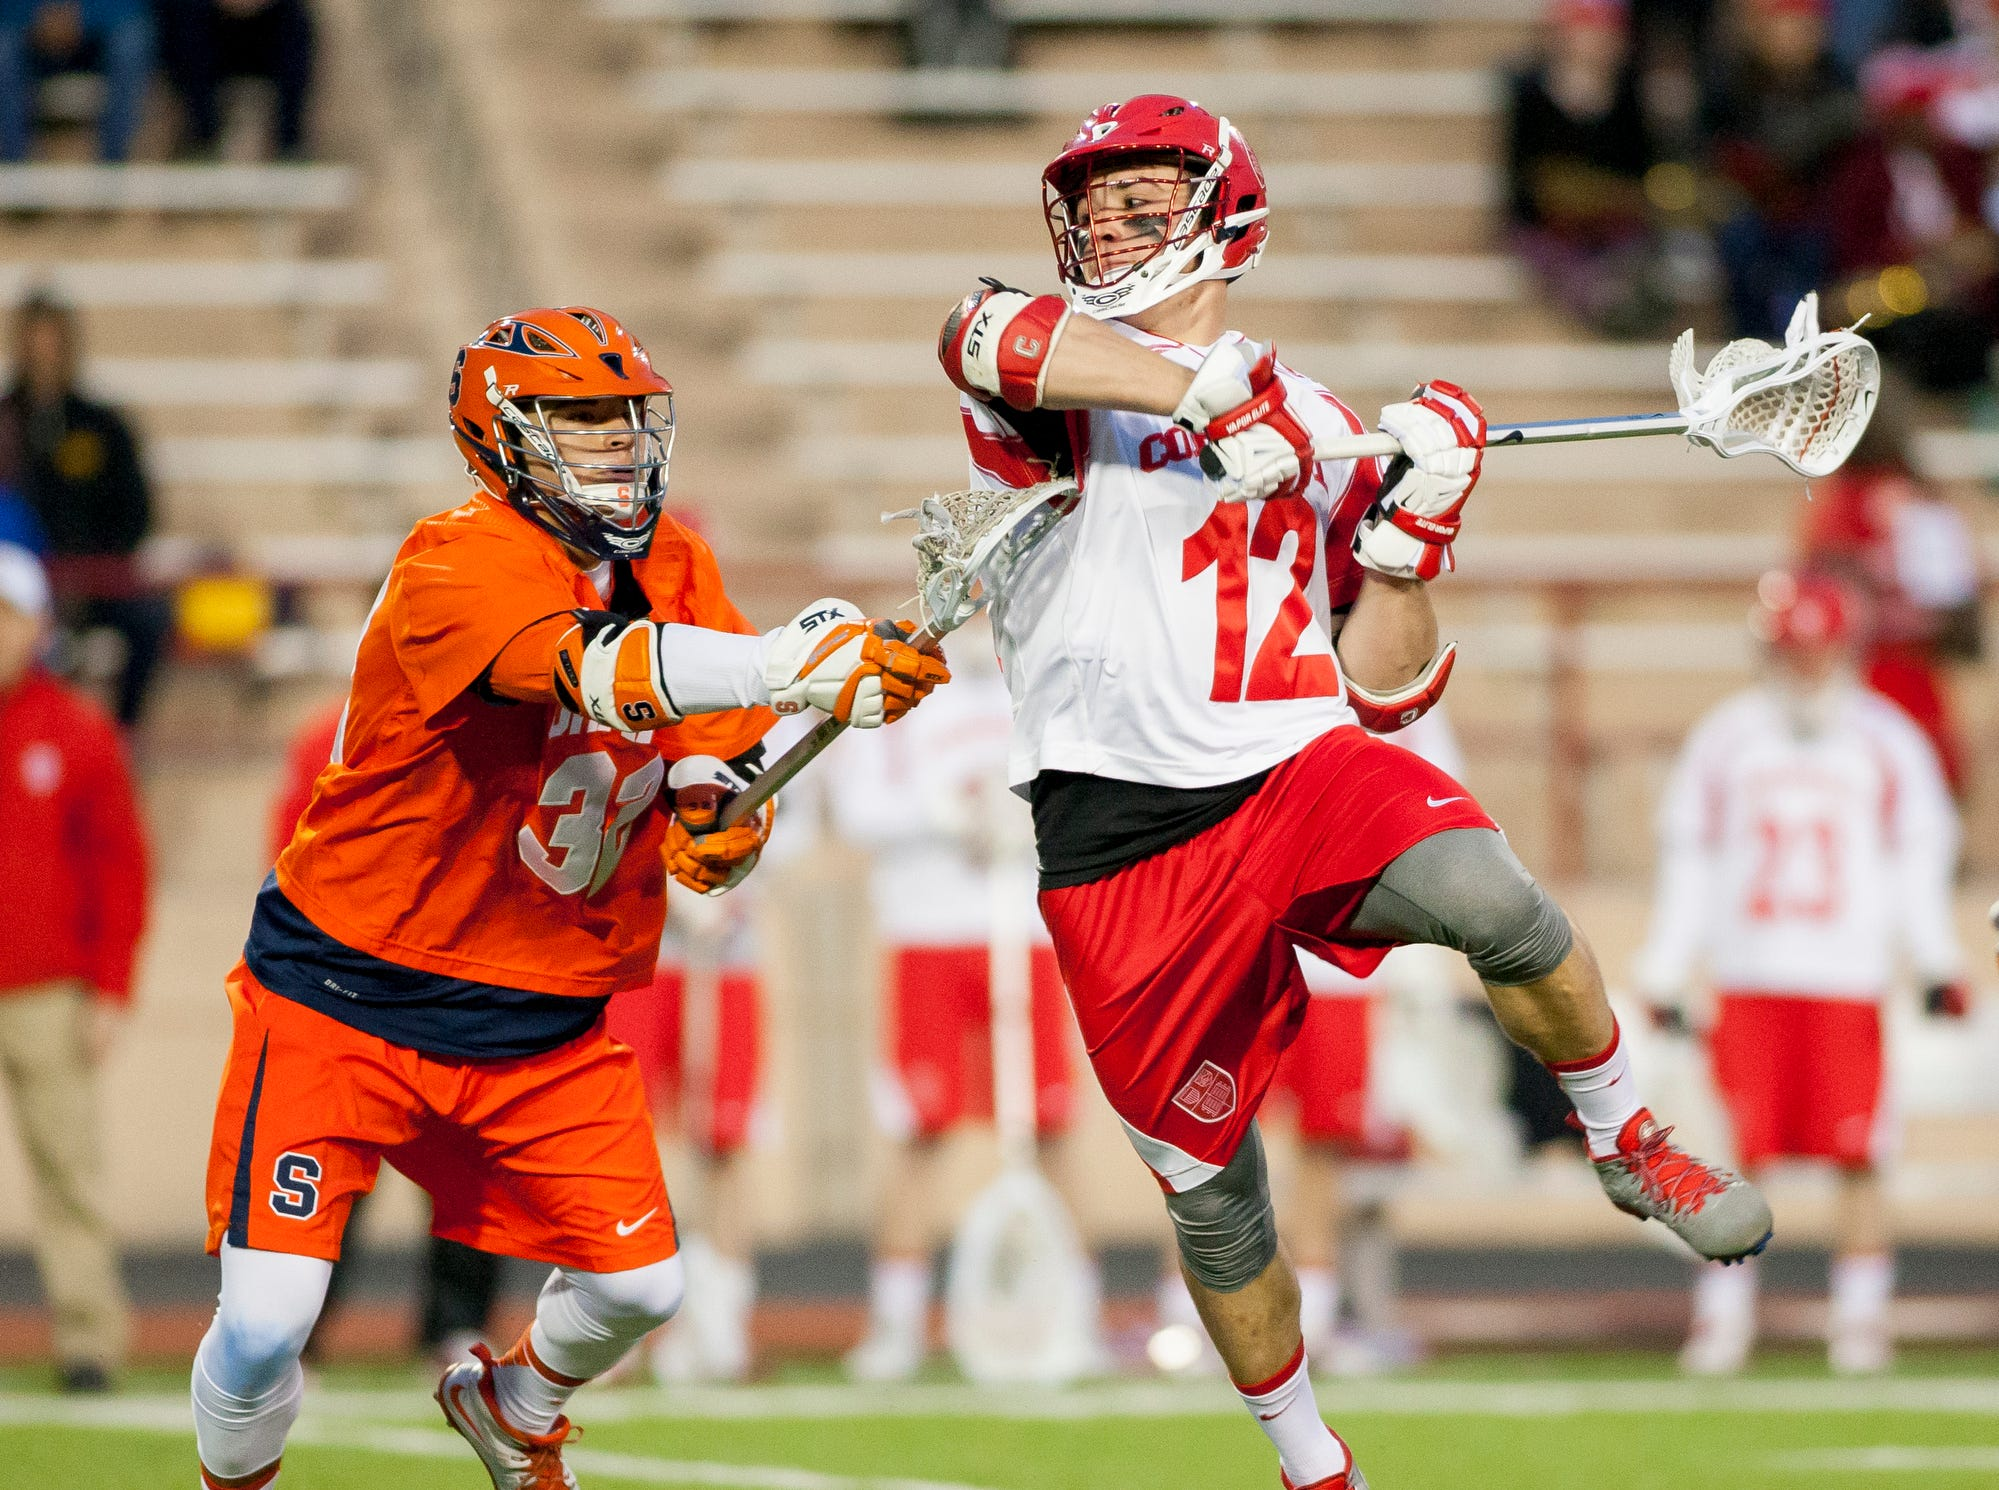 2014: Syracuse's Tom Grimm, left, defends as Cornell's Joe Paoletta winds up to shoot and score Cornell's fifth goal during the first half of their game Tuesday evening at Schoellkopf Field in Ithaca.